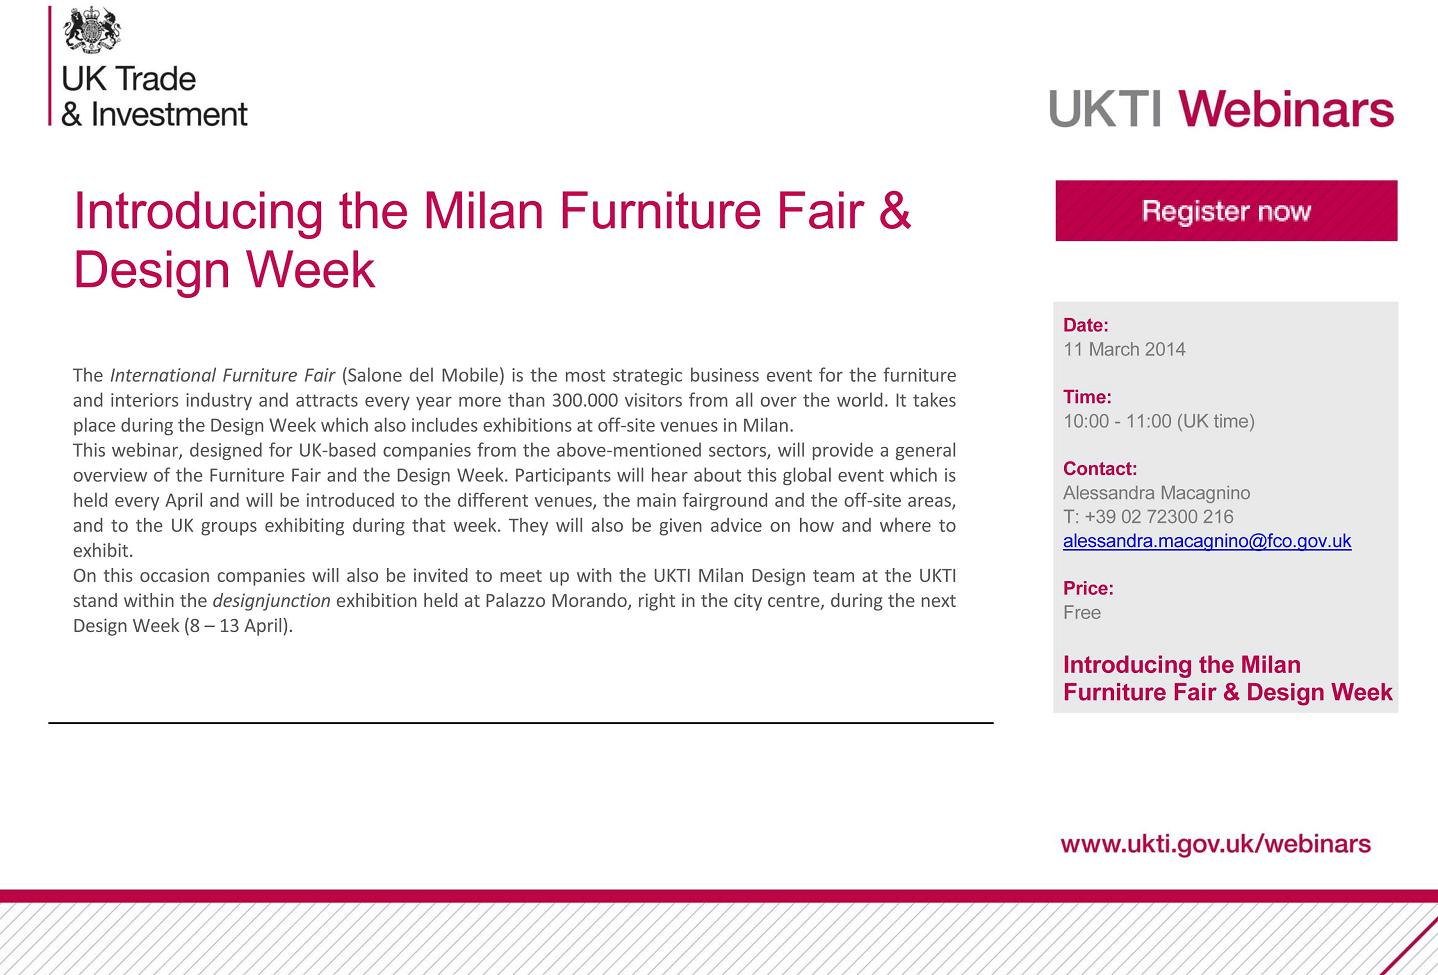 Introducing the Milan Furniture Fair & Design Week  at Palazzo Morando, Sant'Andrea Street, 8-13 April 2014.